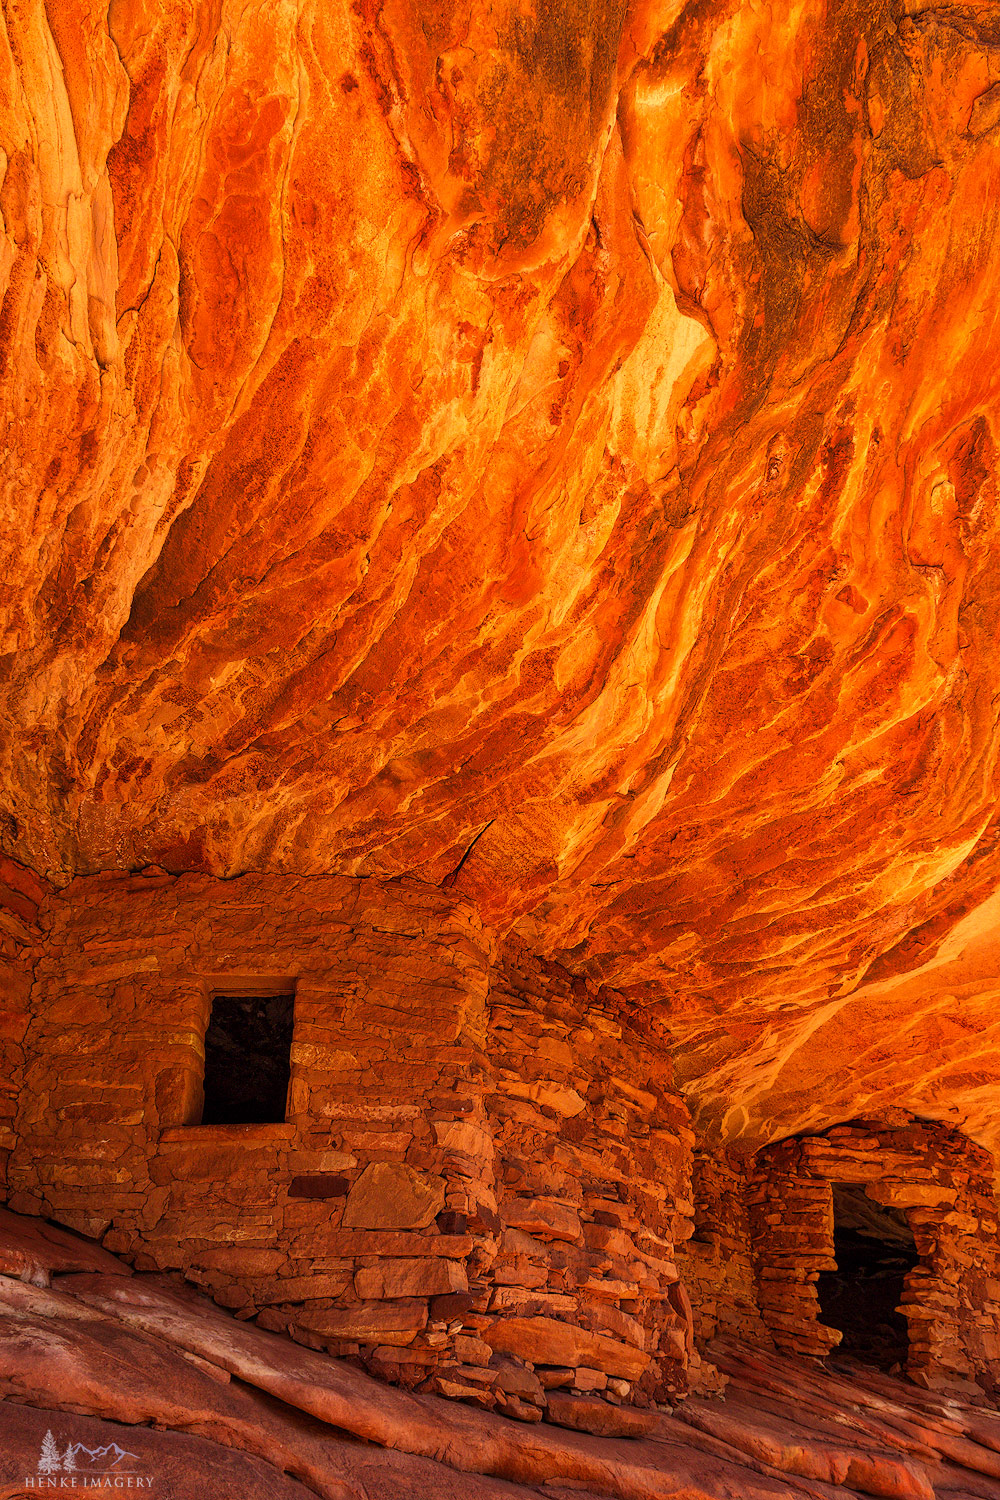 Colorado Plateau, iconic, house on fire, granaries, photo